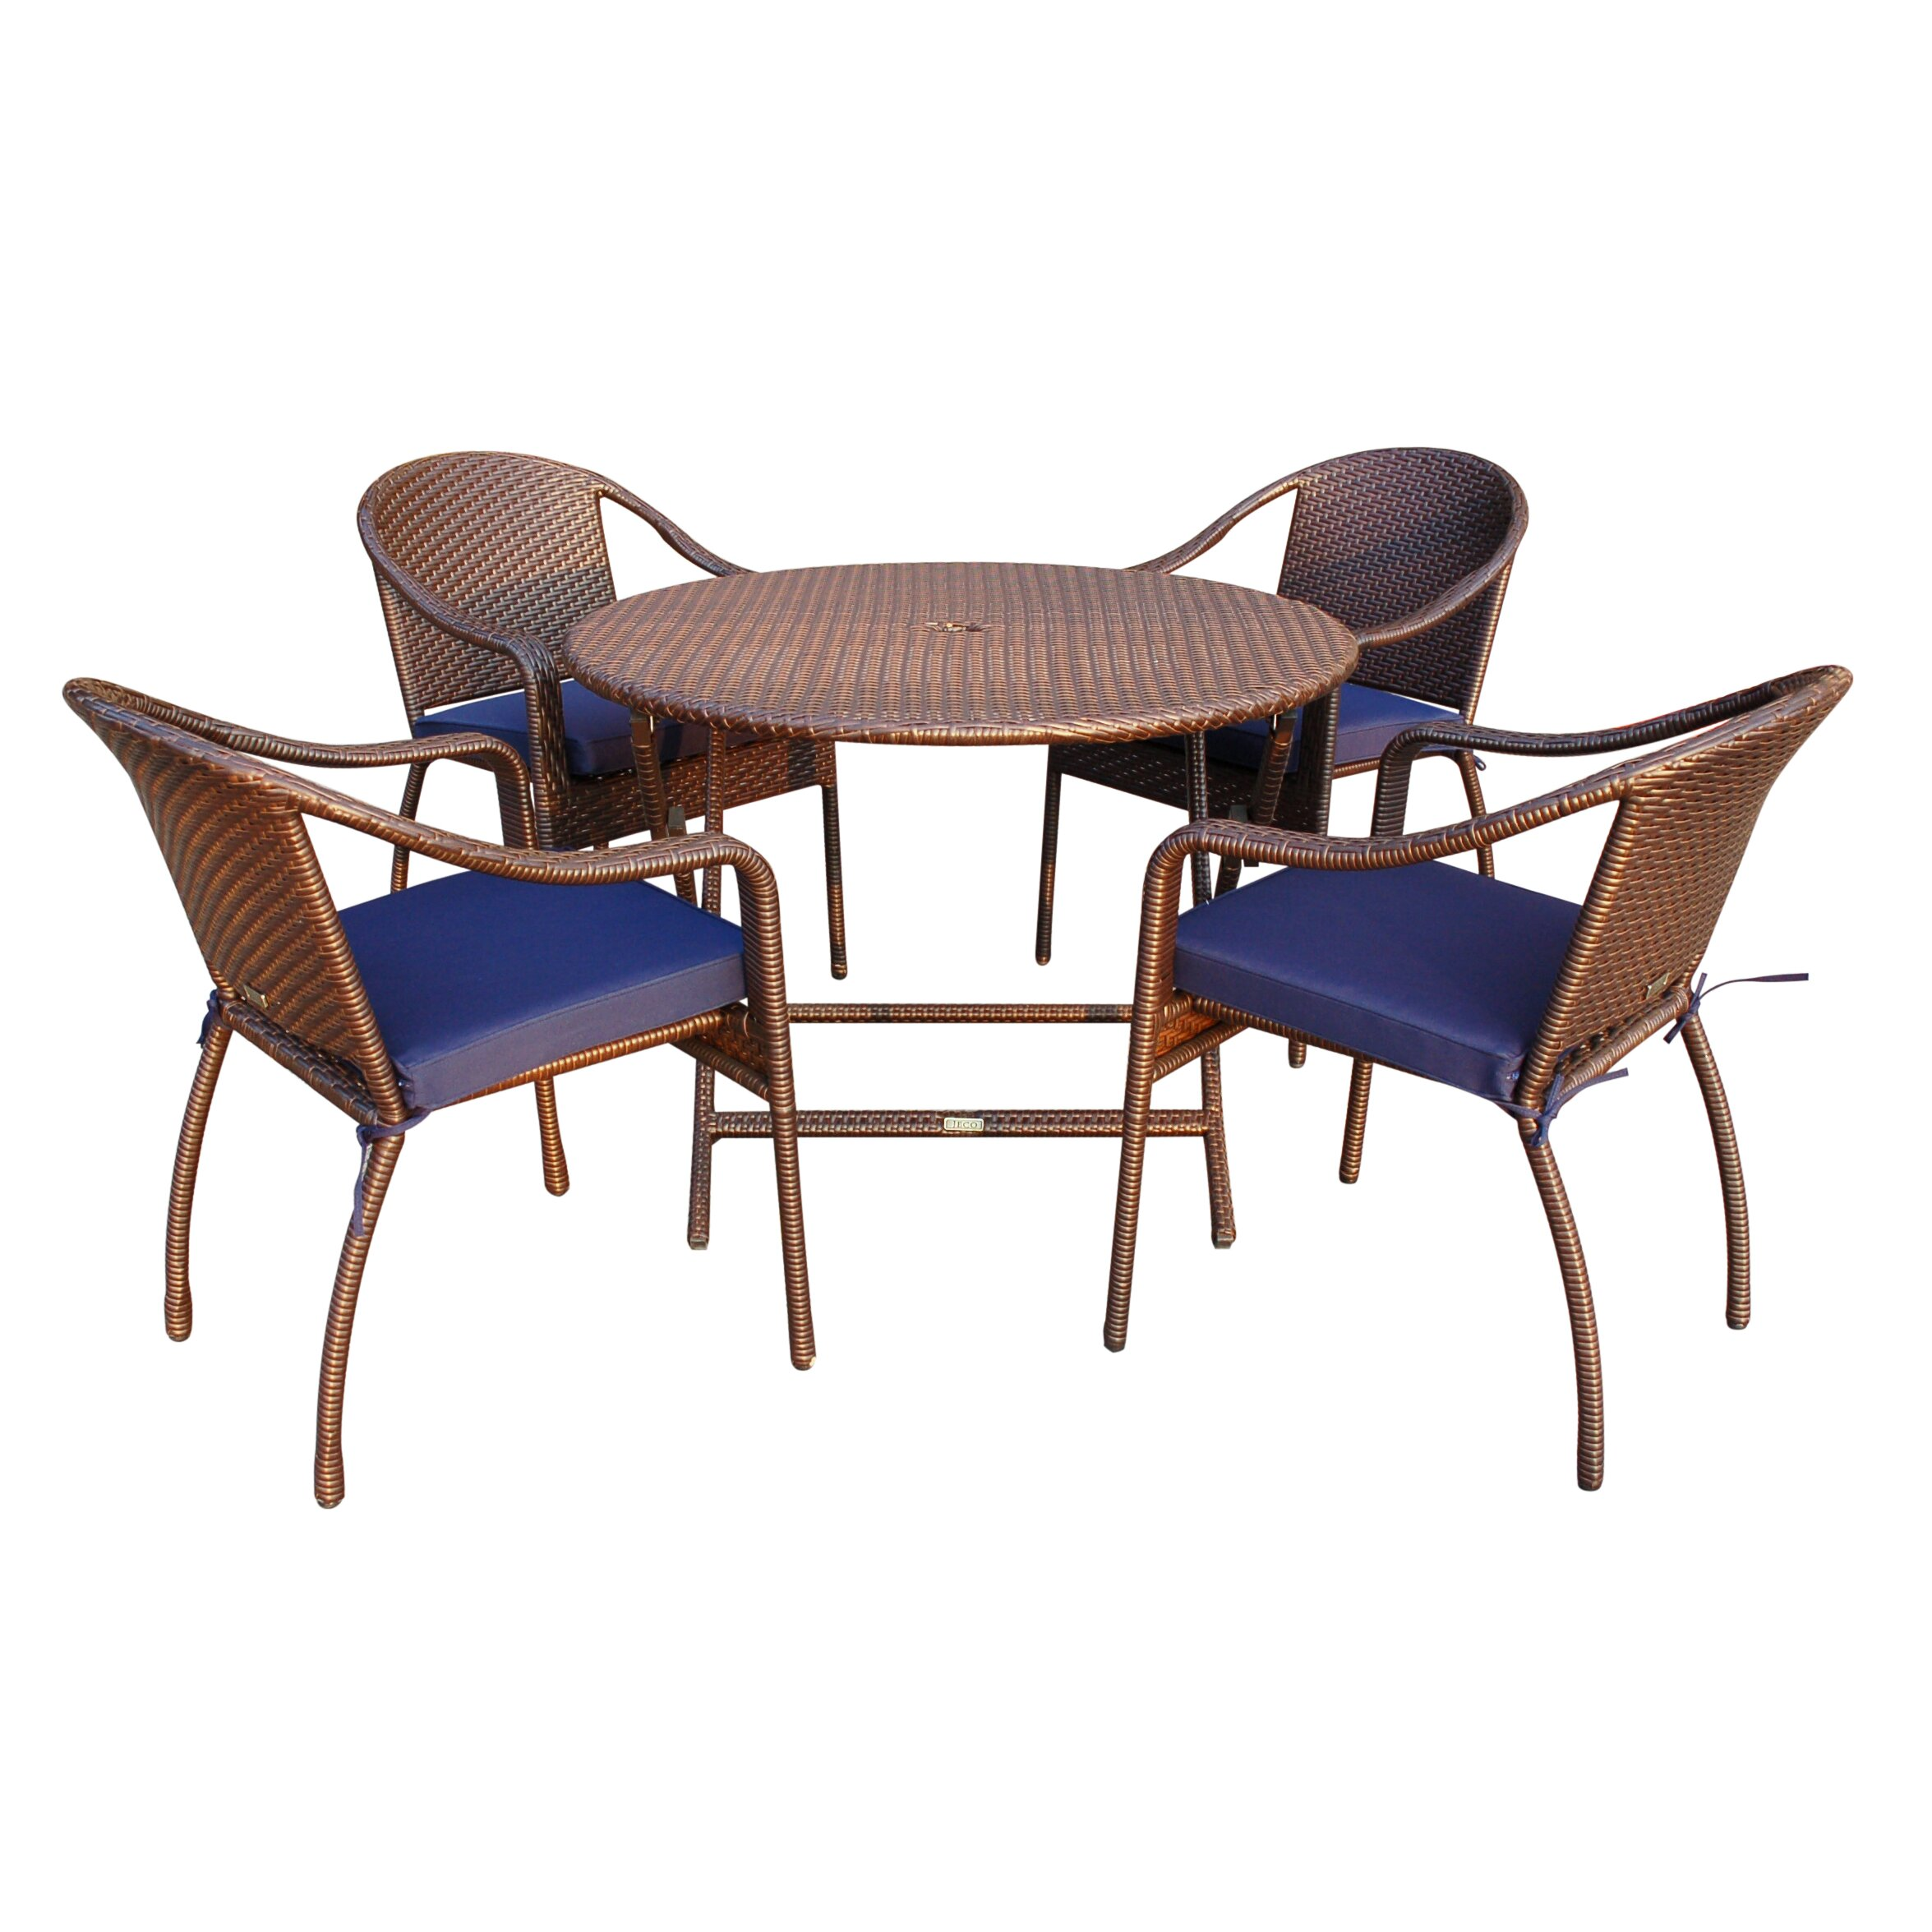 Folding Table Staples picture on 5pcs Cafe Curved Back Chairs and Folding Wicker Table Dining Set W00501R G FS0 JECO1290 with Folding Table Staples, Folding Table 74a6deb60e7ef34c36fdce6177553641